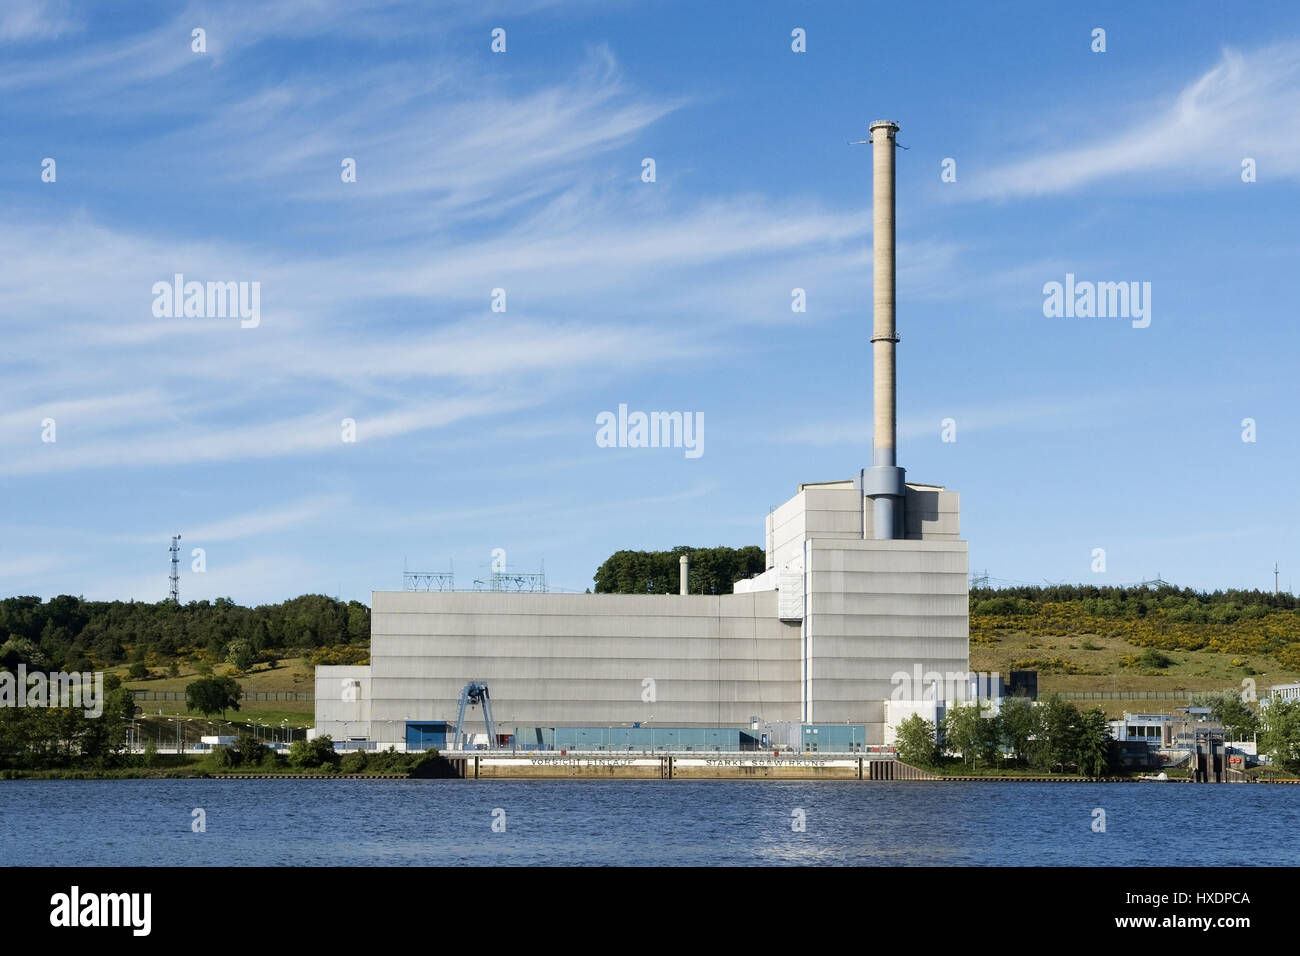 Nuclear power station Kr?mmel, Nuclear power station Kr?mmel |, Atomkraftwerk Krümmel |Nuclear power station - Stock Image